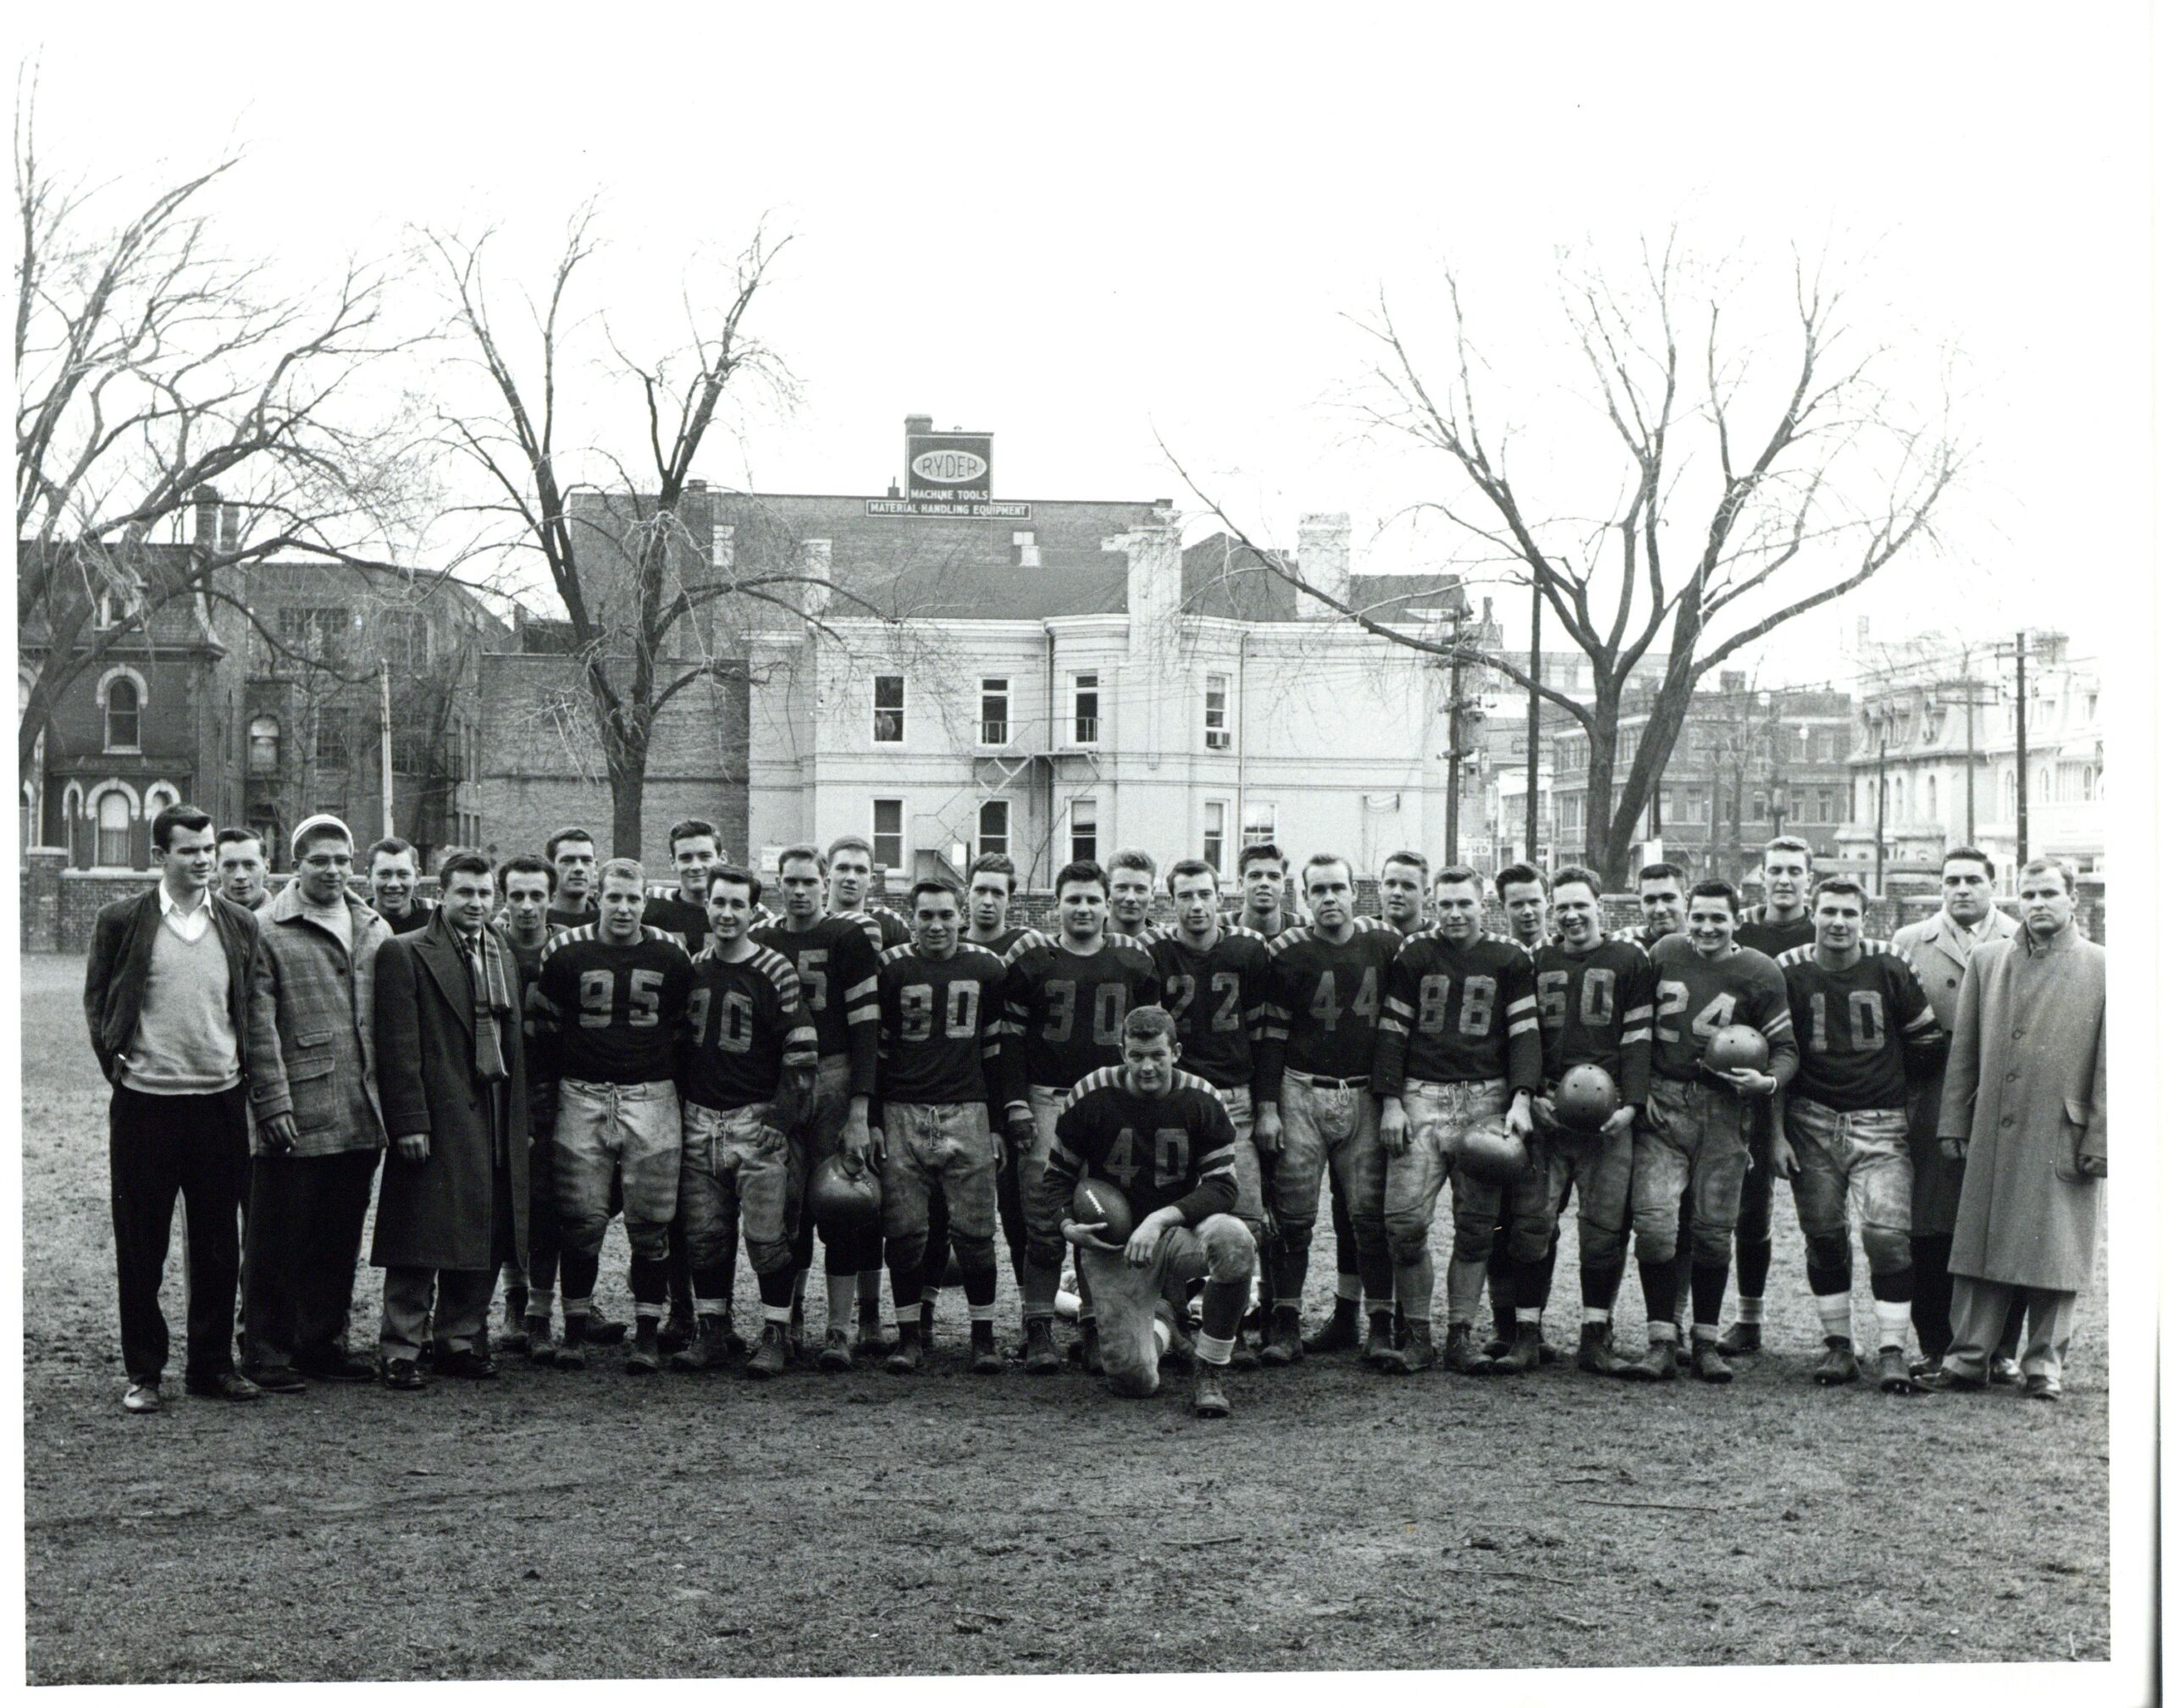 Image depicts a black and white photo of the St.Michael's college football team